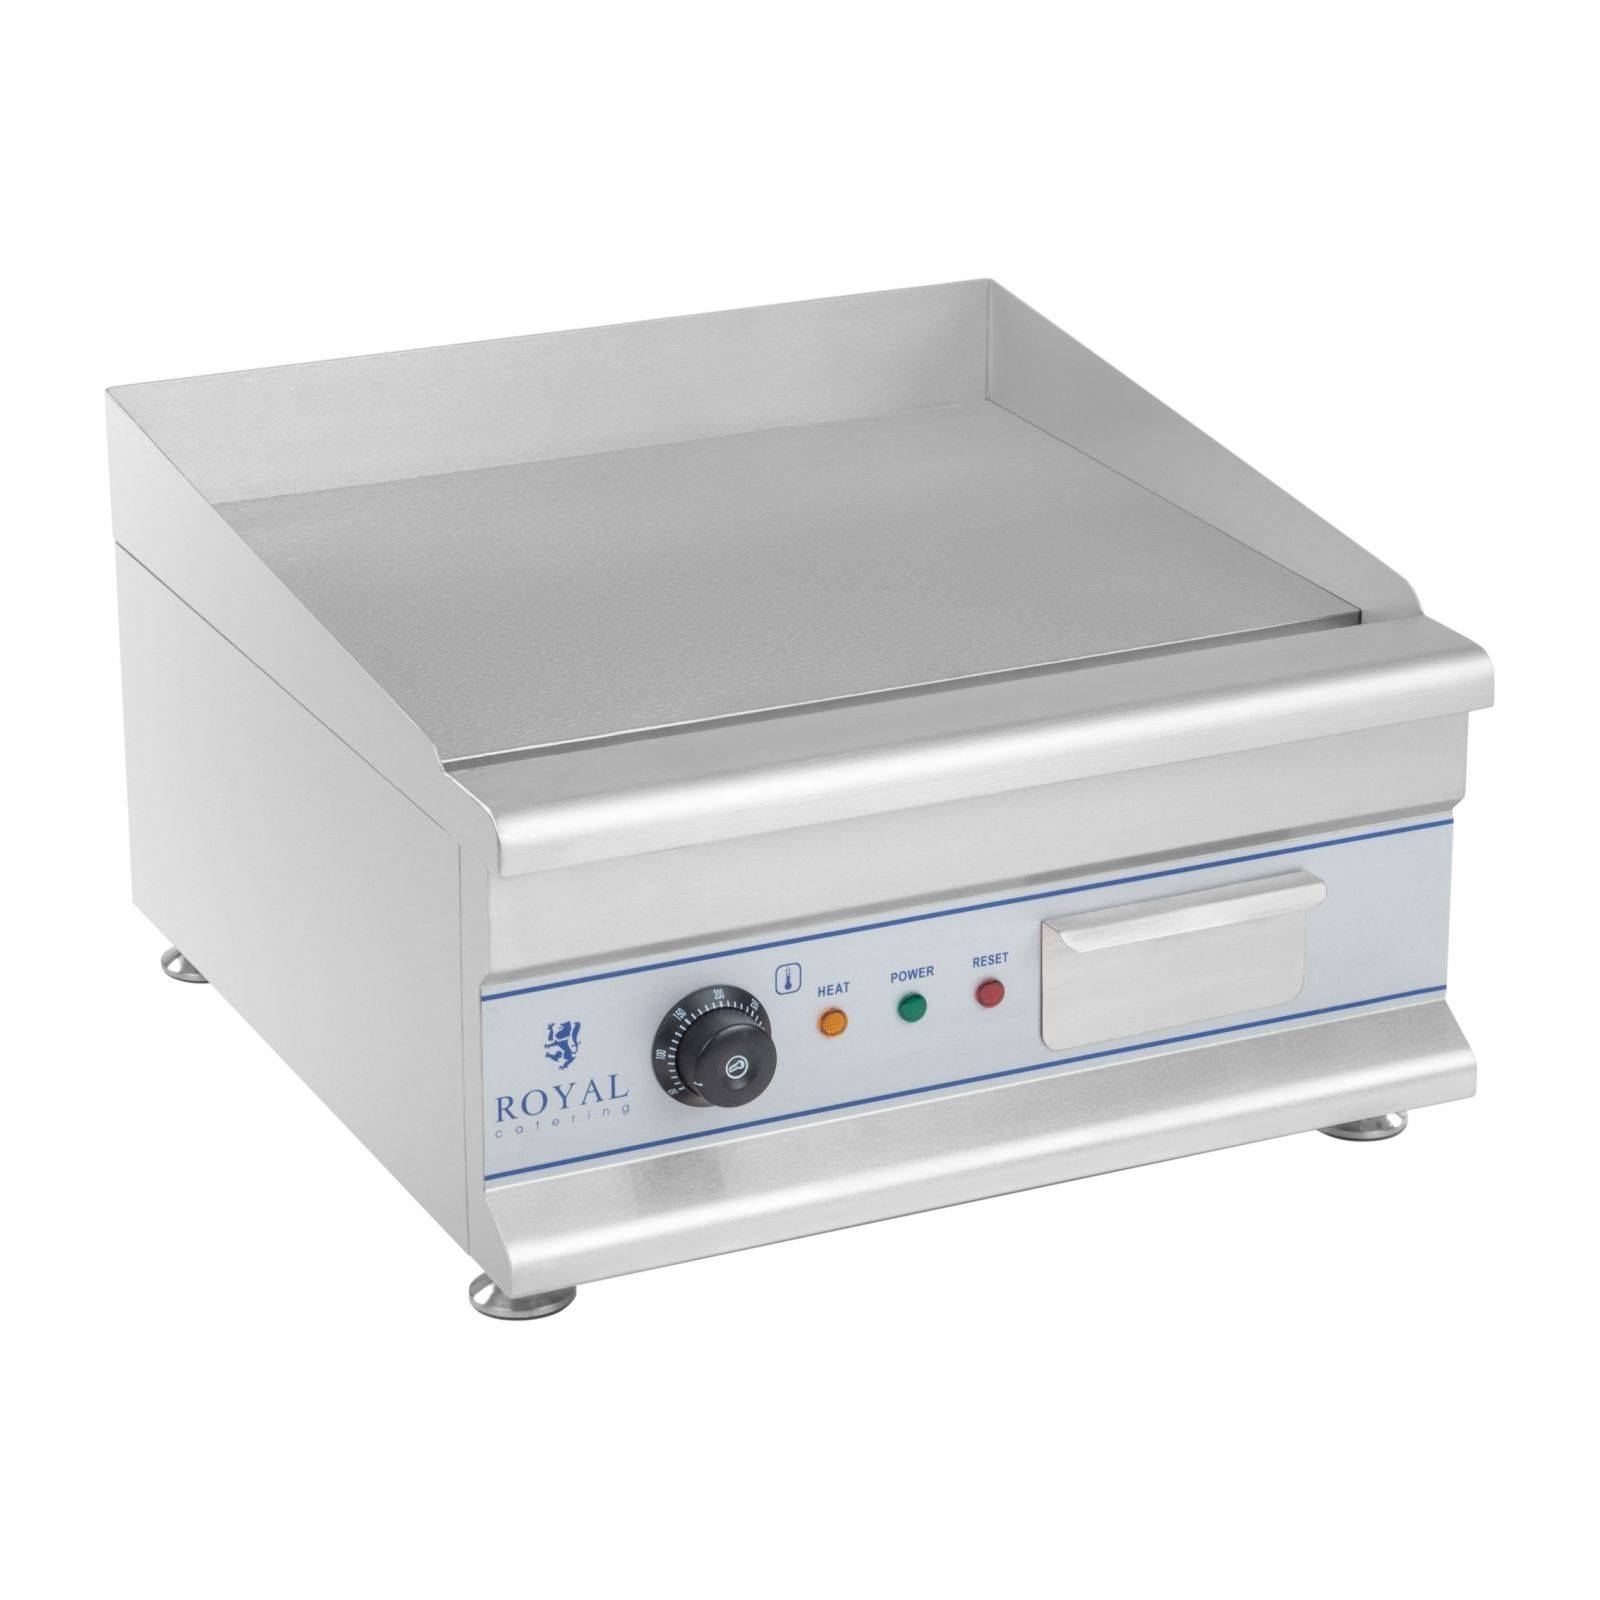 royal catering fry top liscio elettrico - 50 cm - 1 x 3.2 kw - per uso professionale